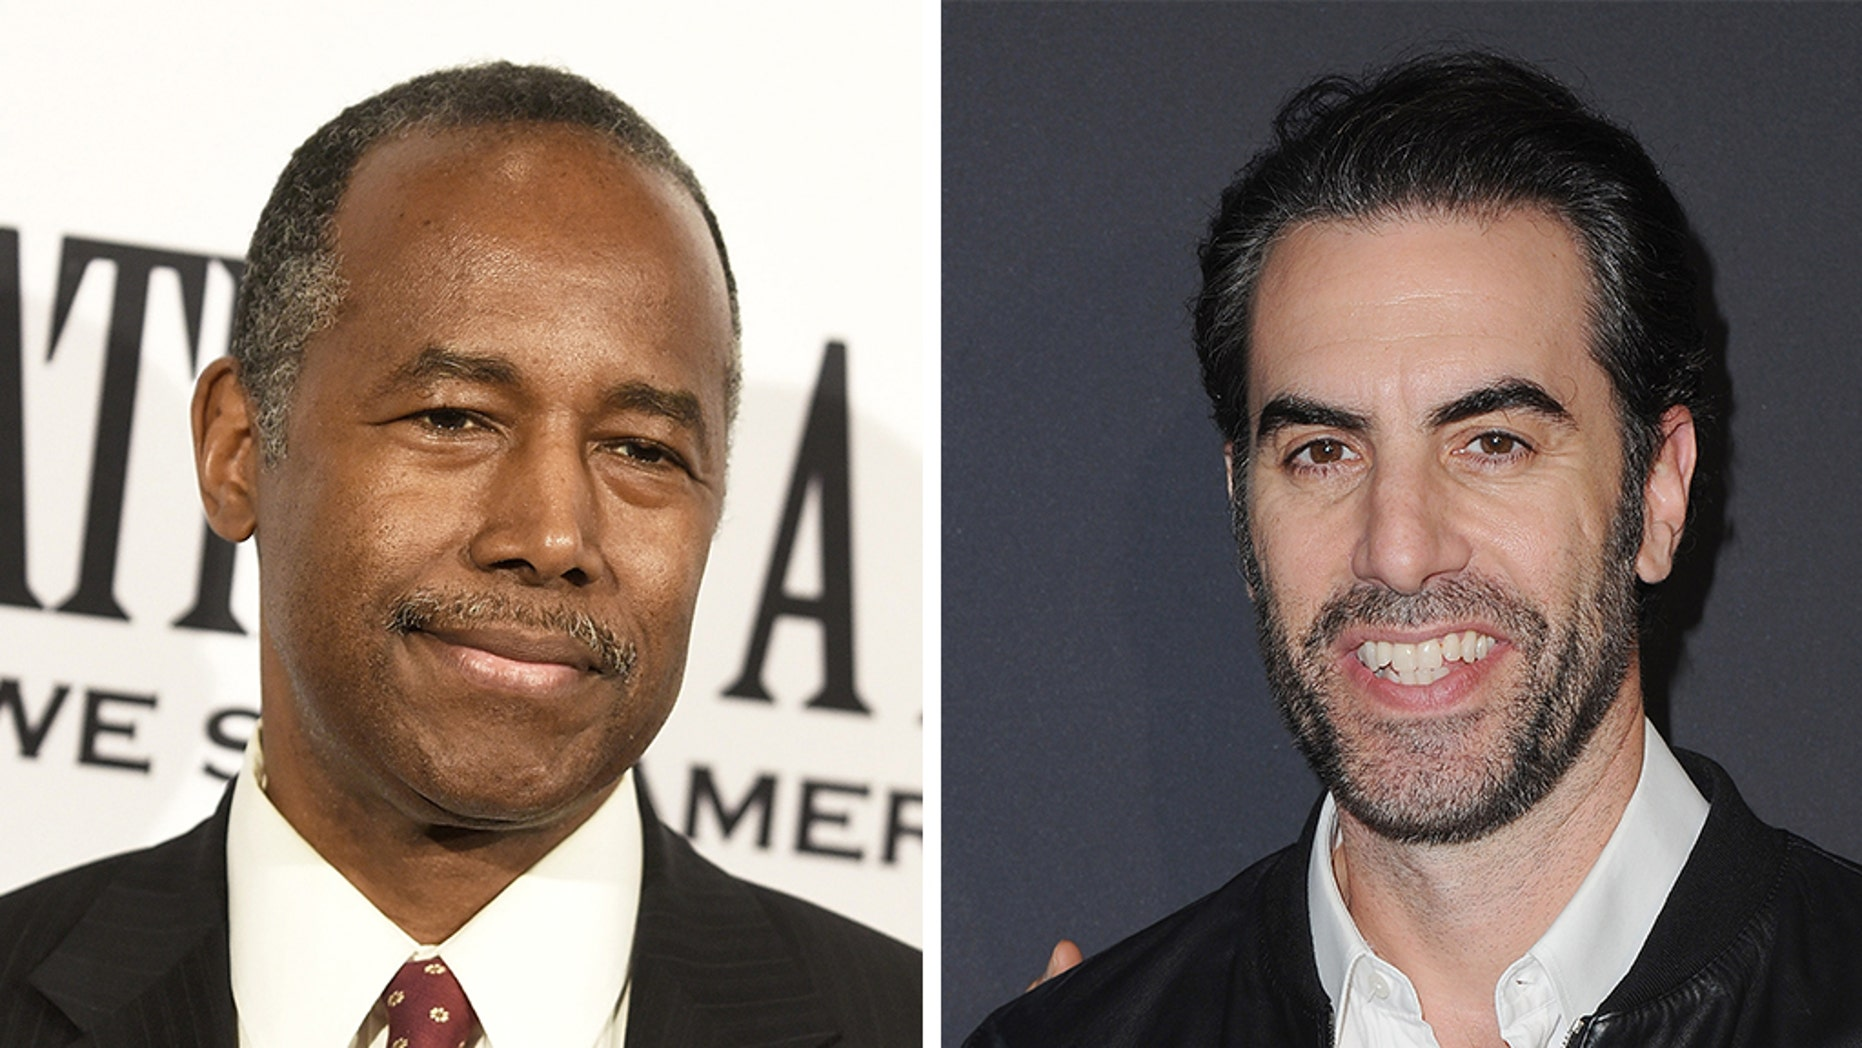 Sacha Baron Cohen said he was close to Ben Carson, the Secretary of Housing and Urban Development.